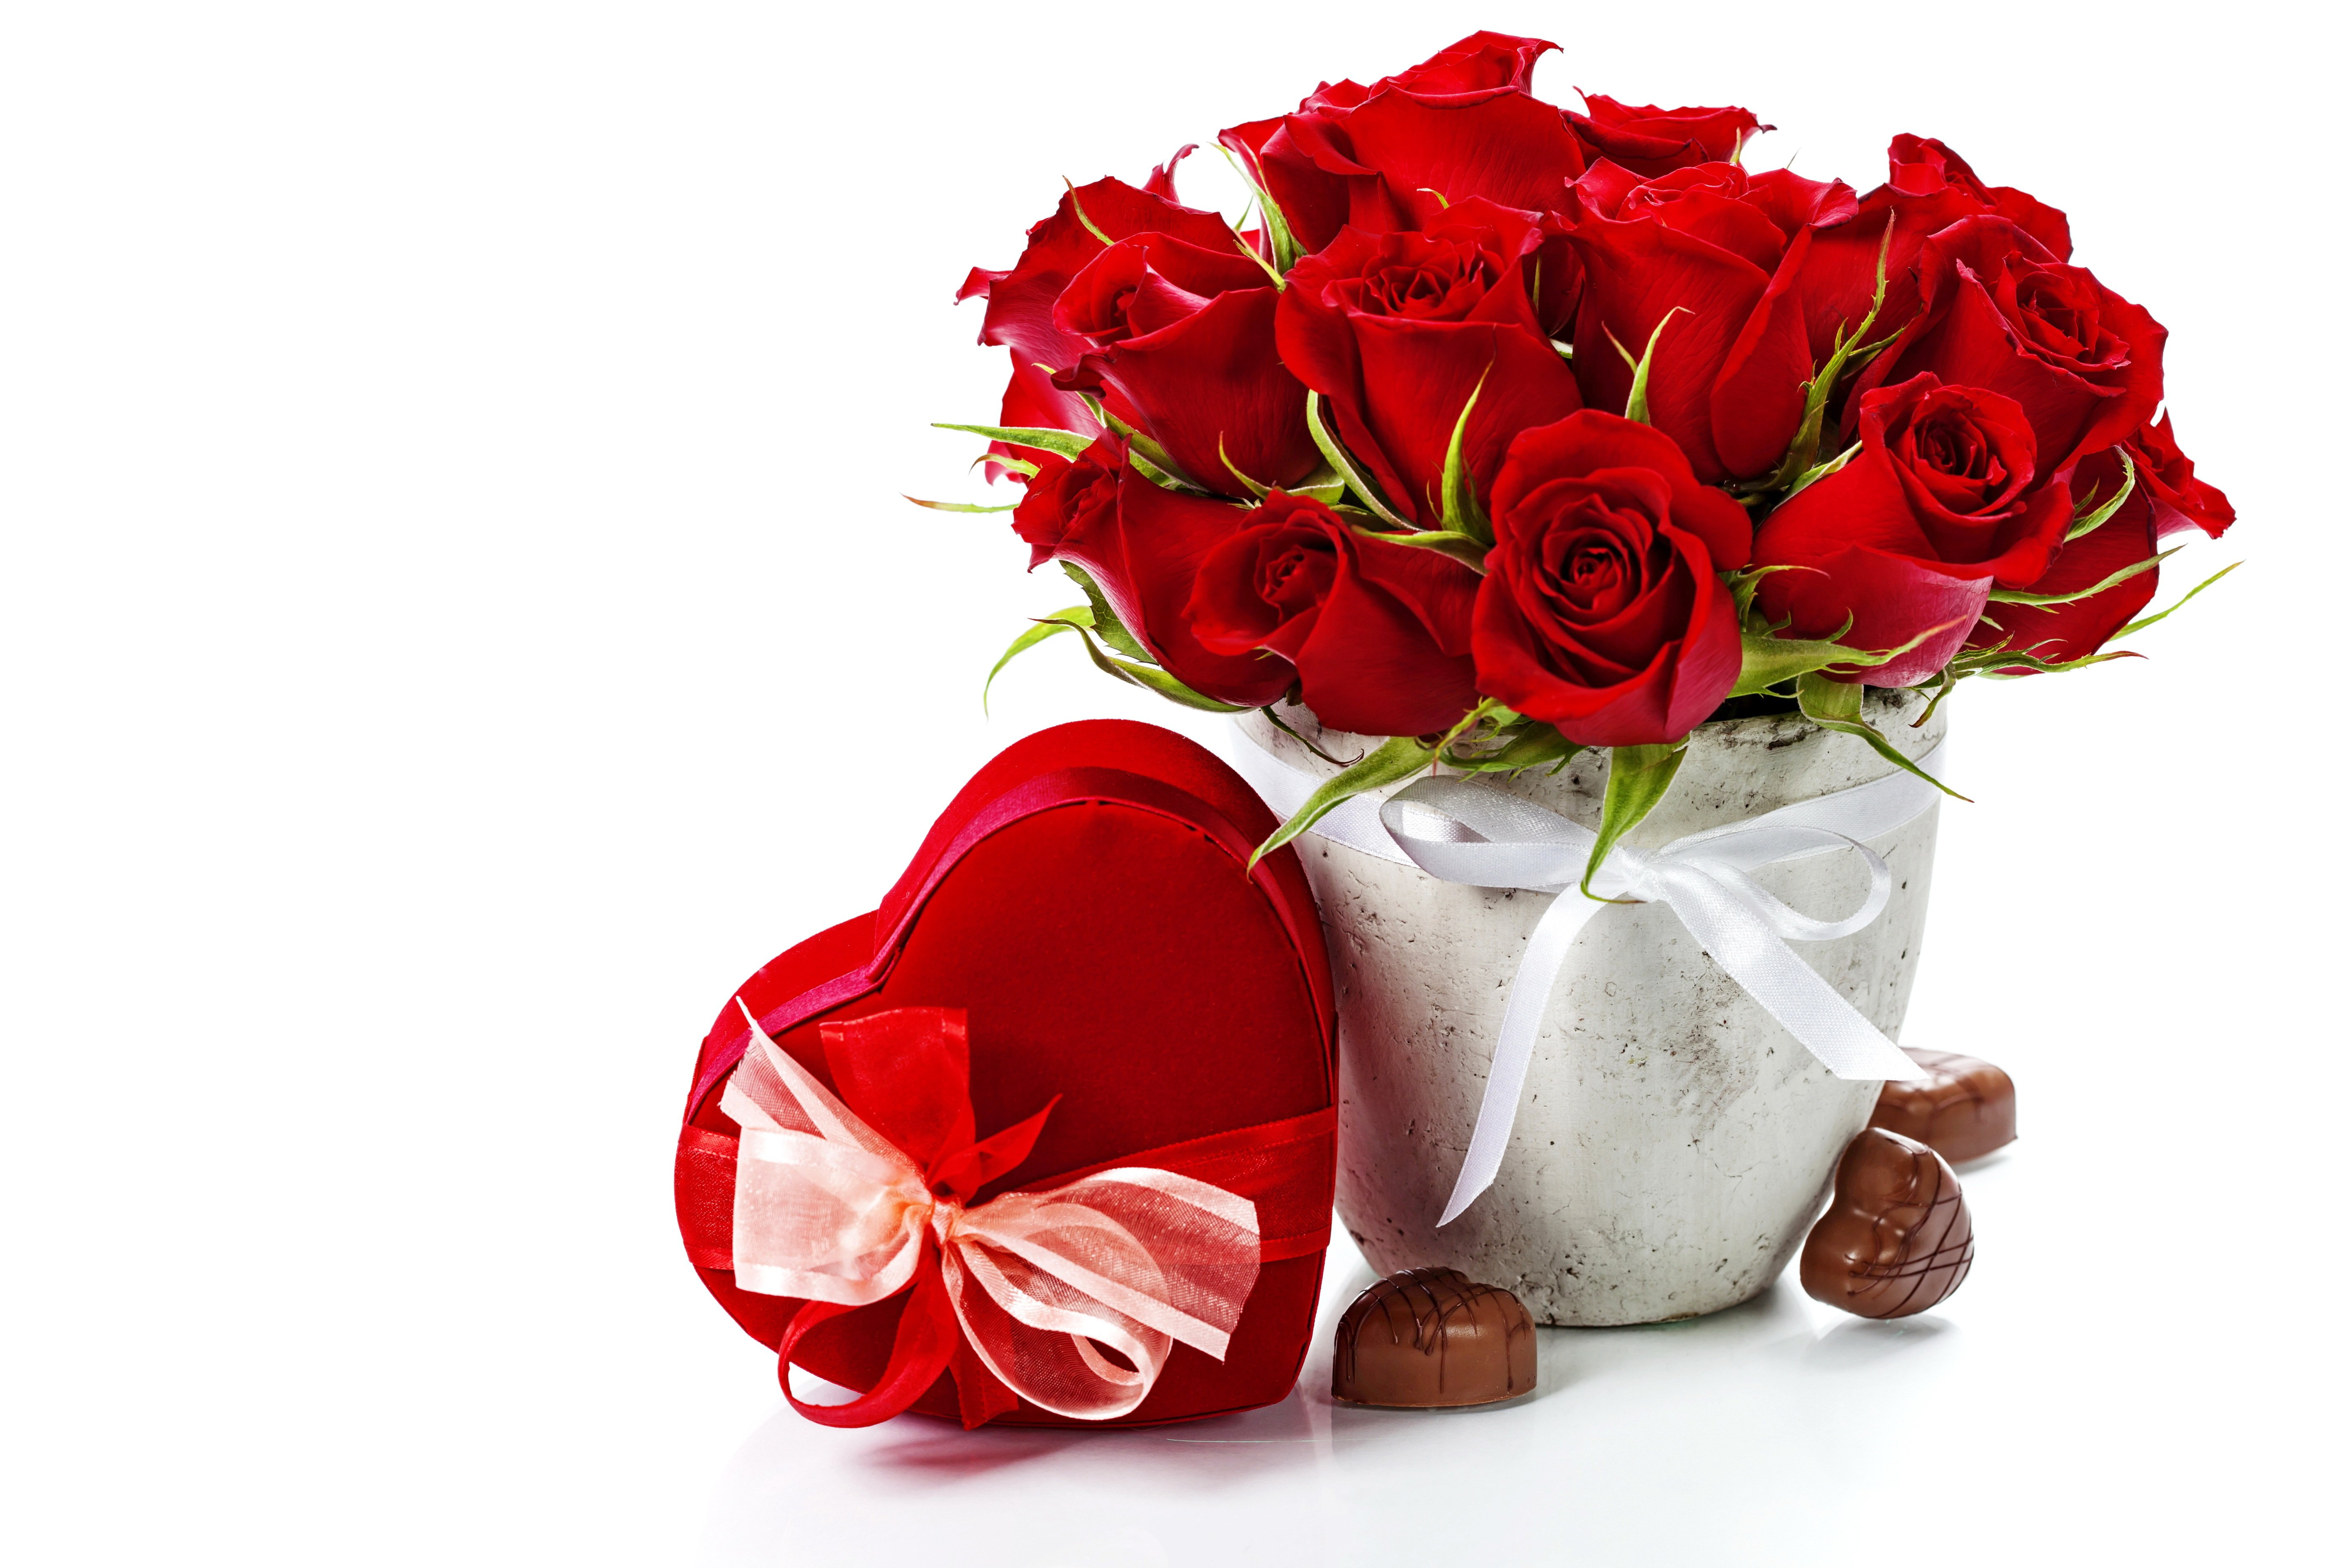 Rose Flowers Red Love Romance Life For Chocolate Gift Couple Bouquet